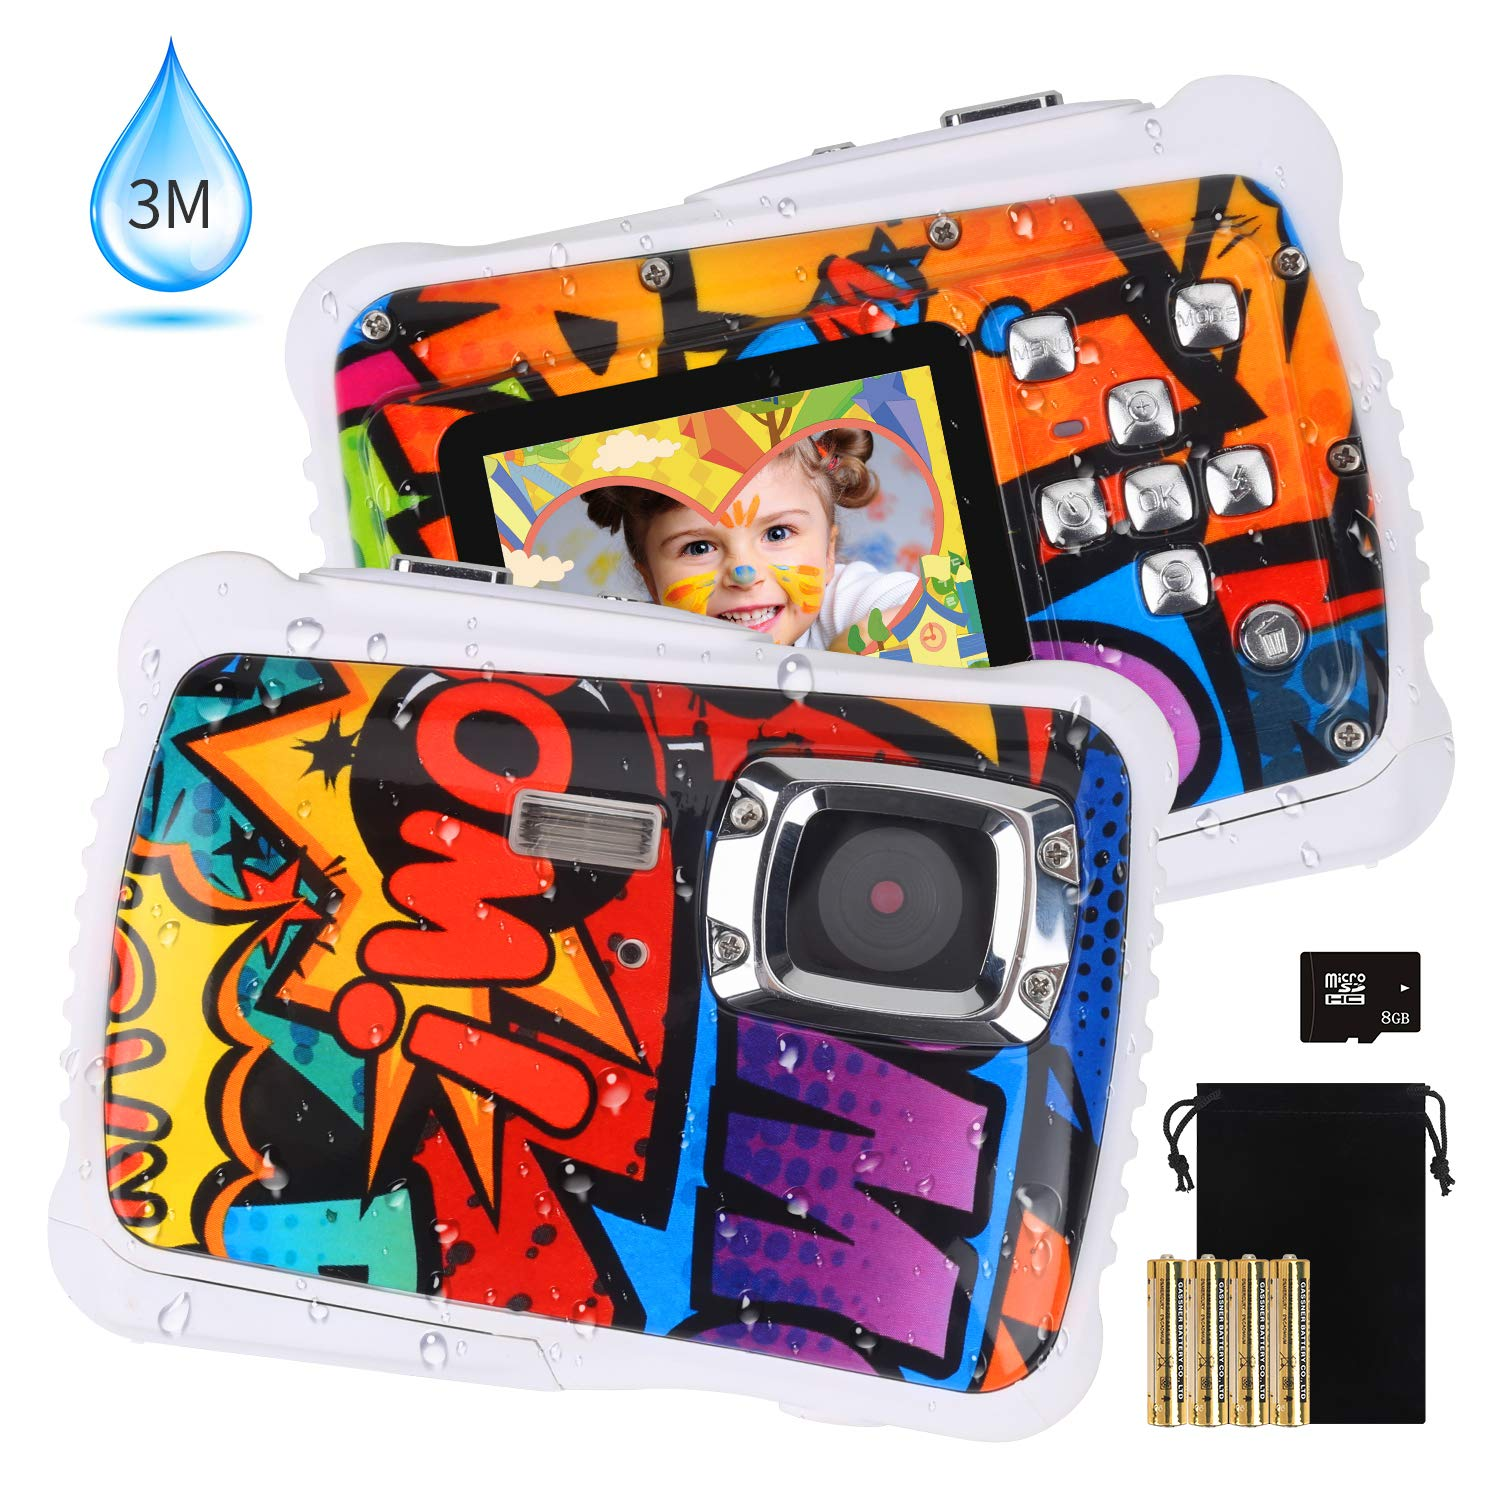 [2019 Newest Kids Camera] Kids Waterproof Camera, DECOMEN Digital Underwater Camera for Boys and Girls, 12MP HD Action Sport Camcorder with 2.0'' LCD, 8X Digital Zoom, Flash, Mic and 8G SD Card. by DECOMEN